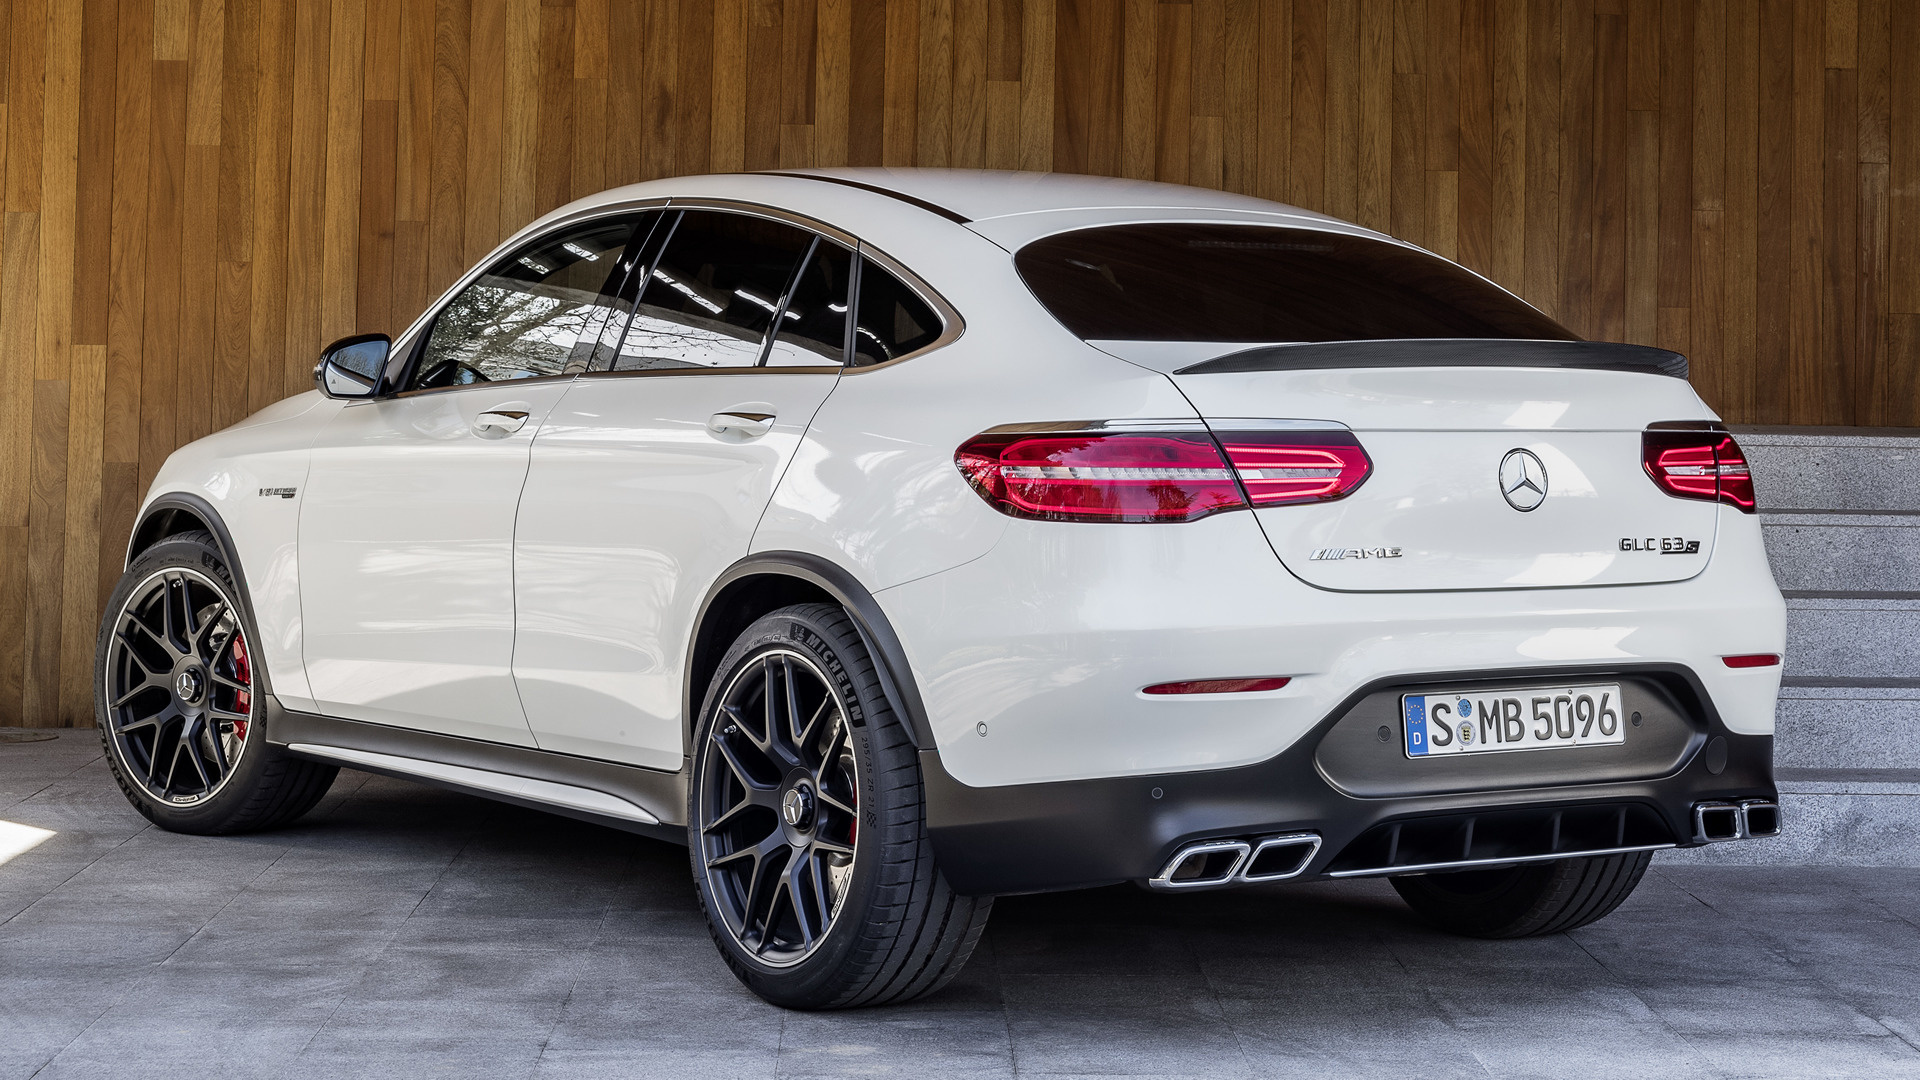 mercedes amg glc 63 s coupe 2017 wallpapers and hd images car pixel. Black Bedroom Furniture Sets. Home Design Ideas